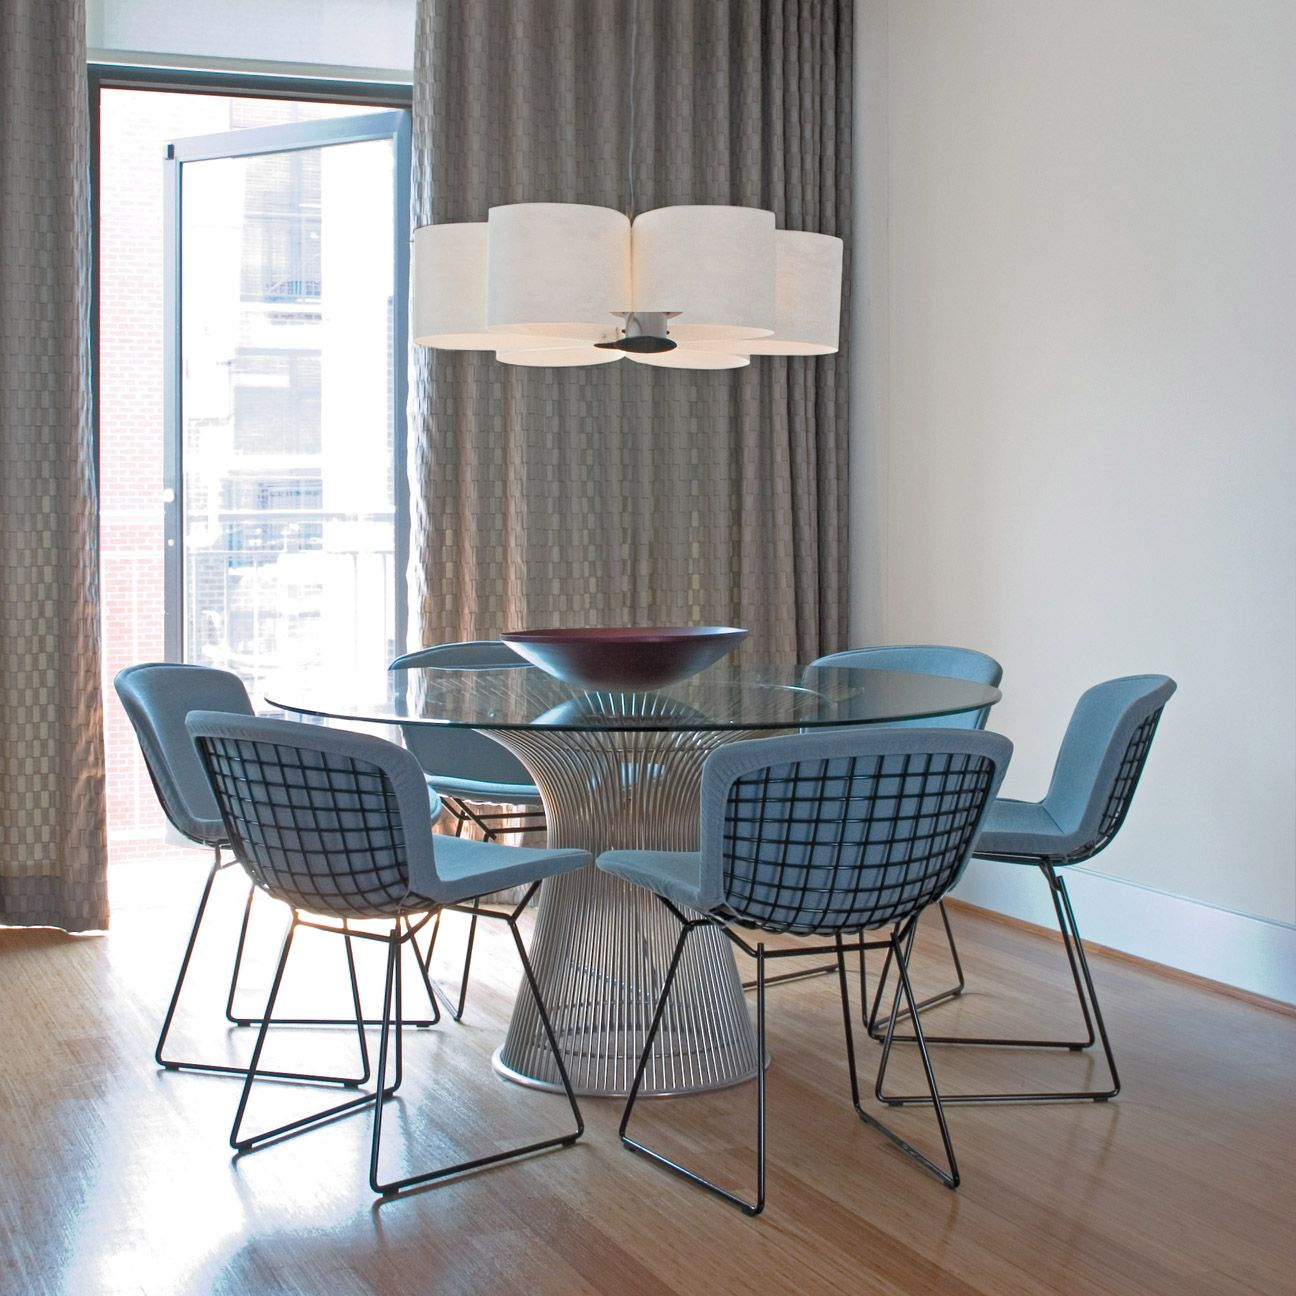 Knoll bertoia side chairs with platner dining table